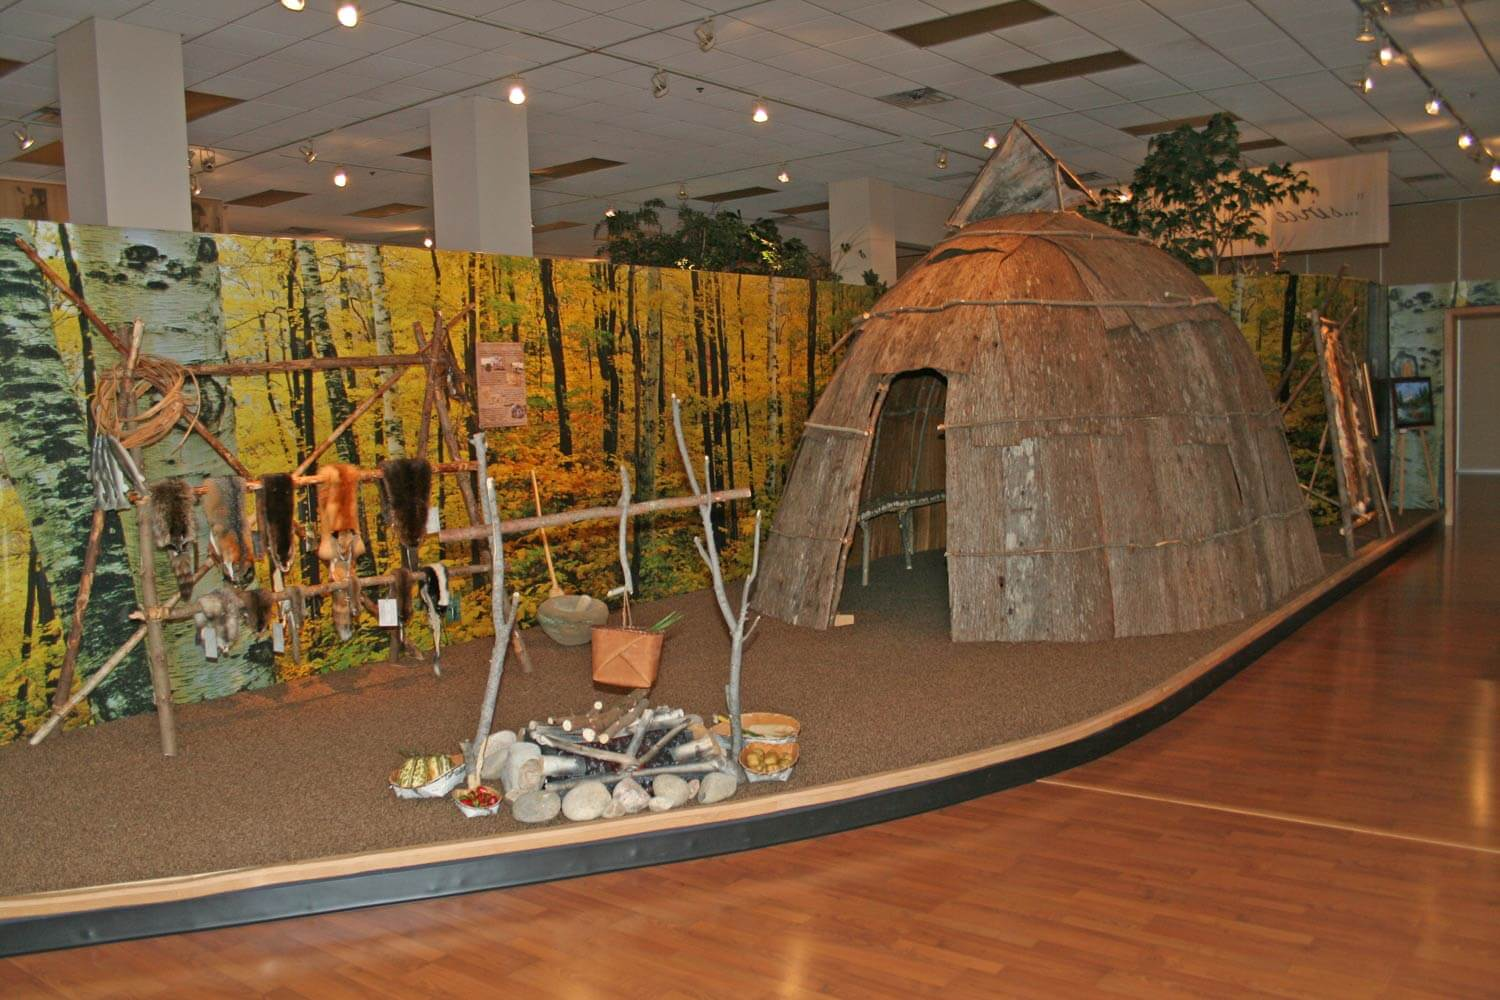 CPN Cultural Heritage Center Traditional Dwelling Image